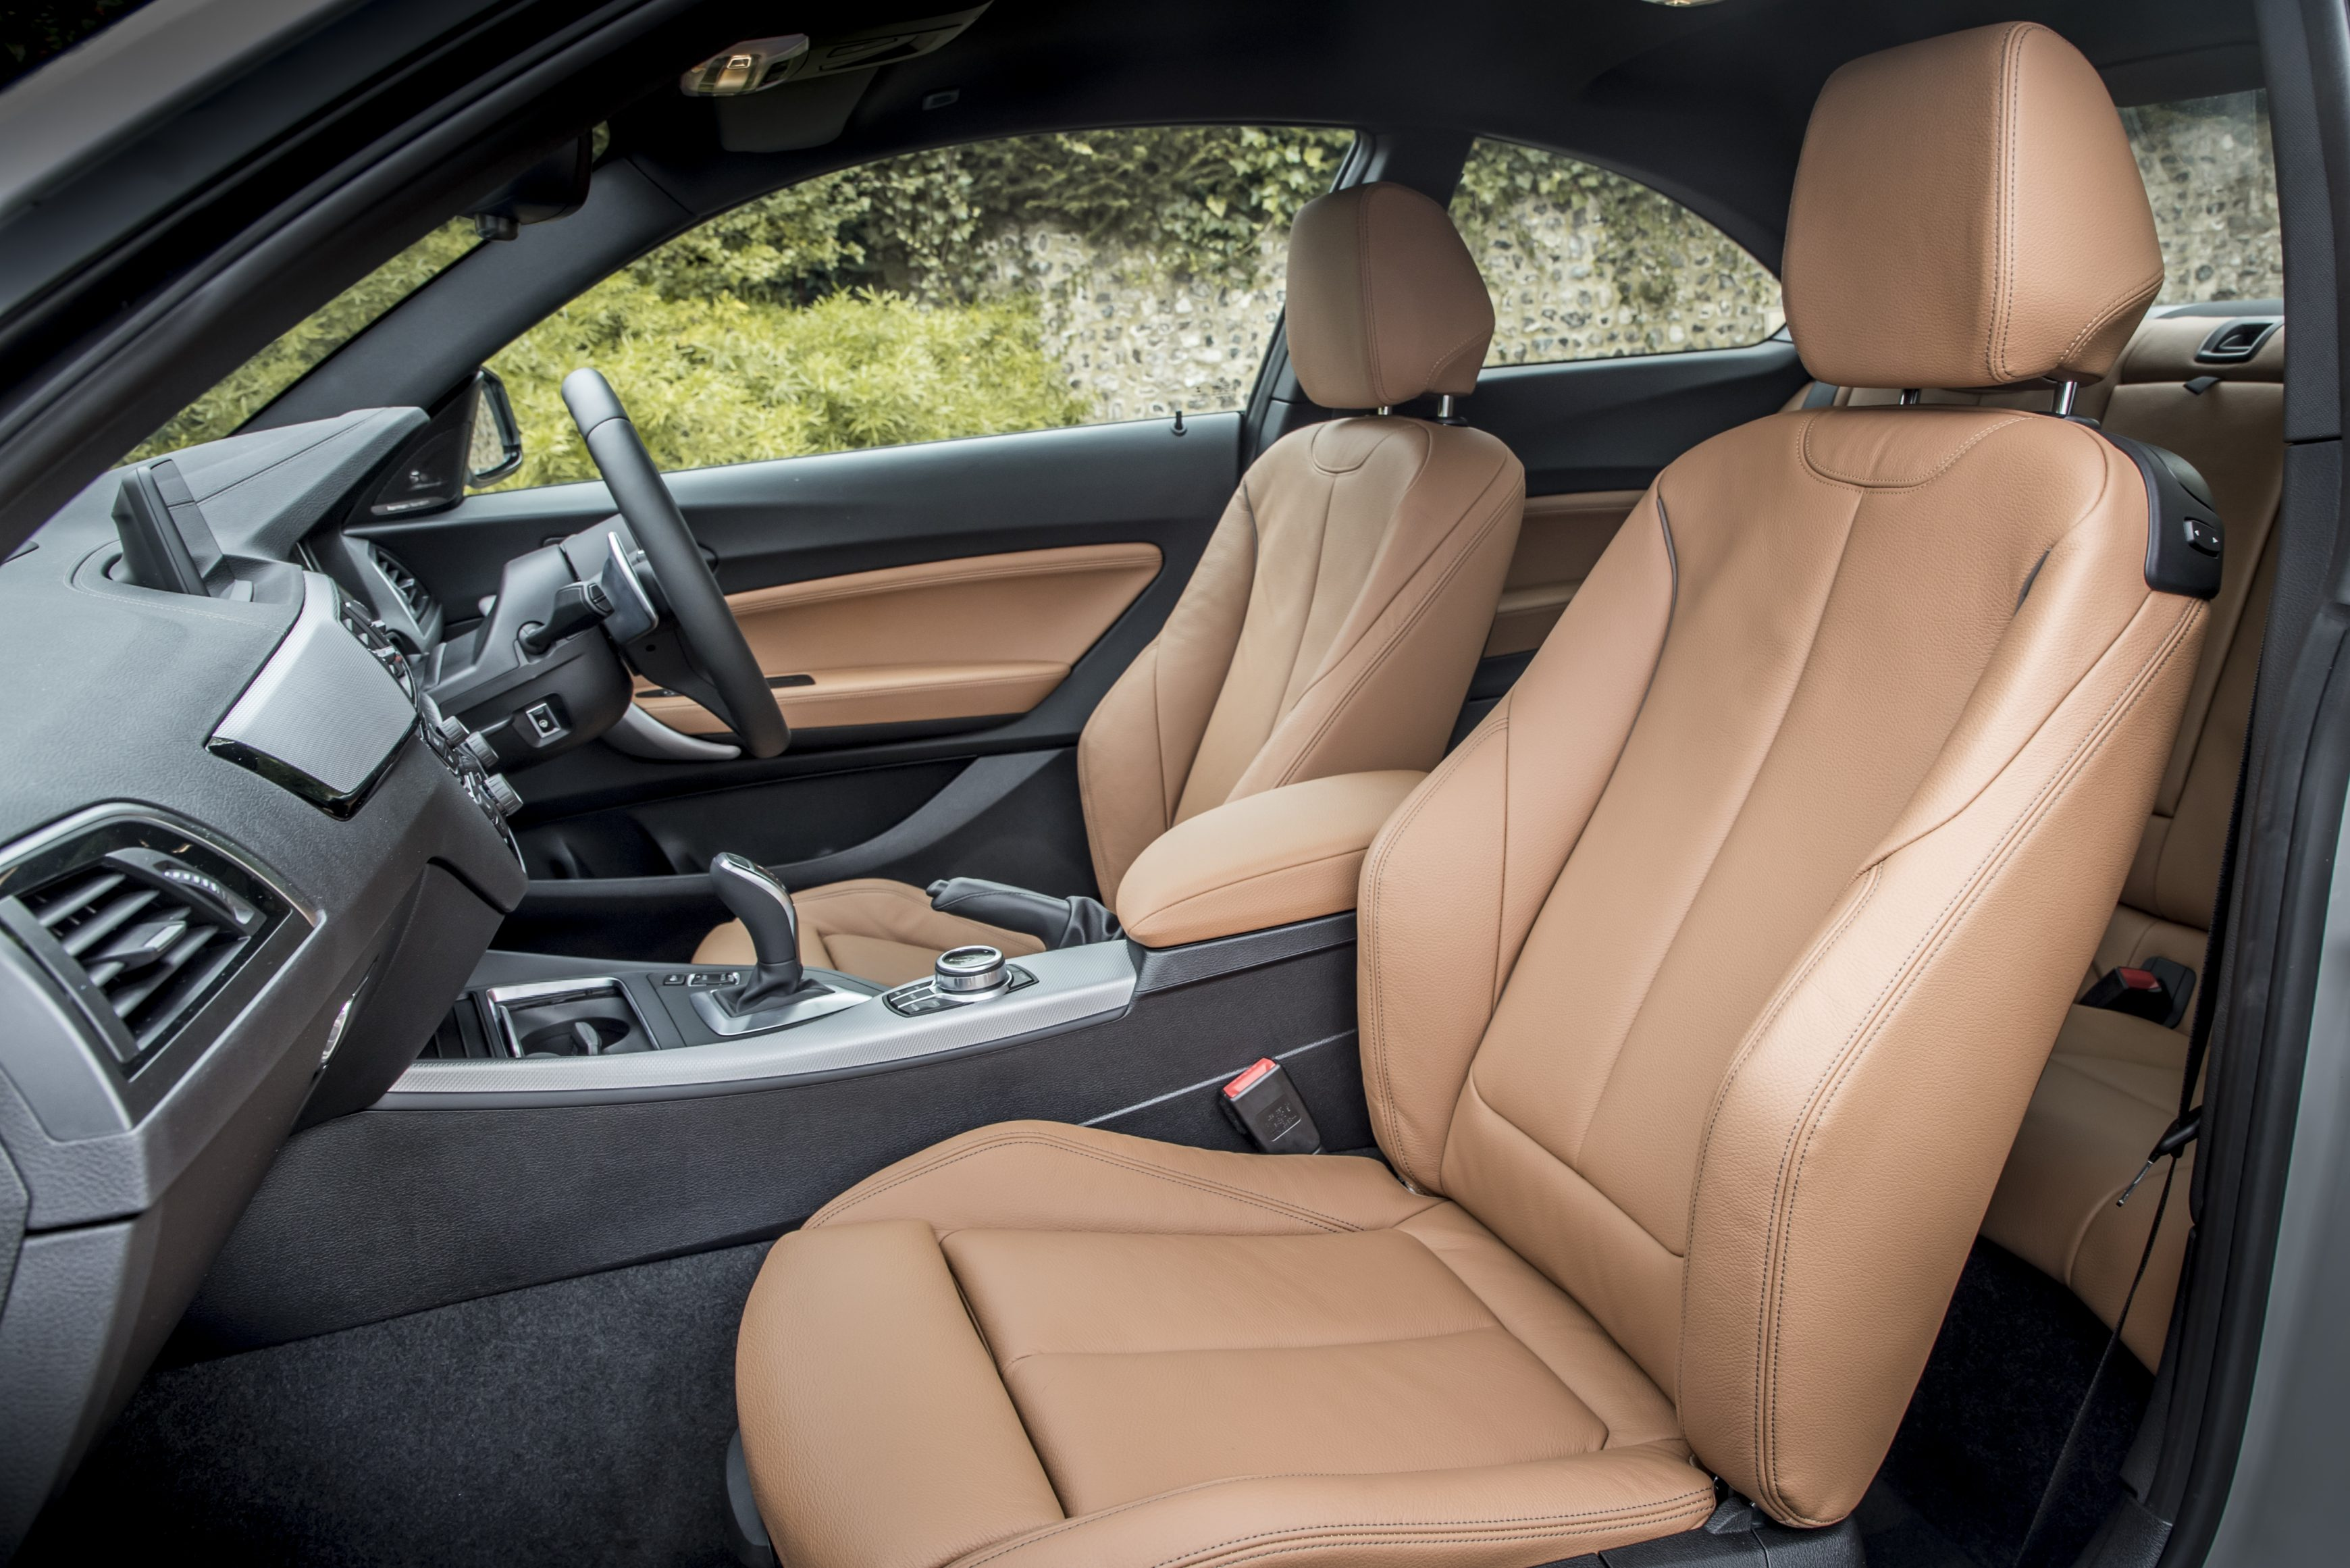 BMW 2 Series front seats